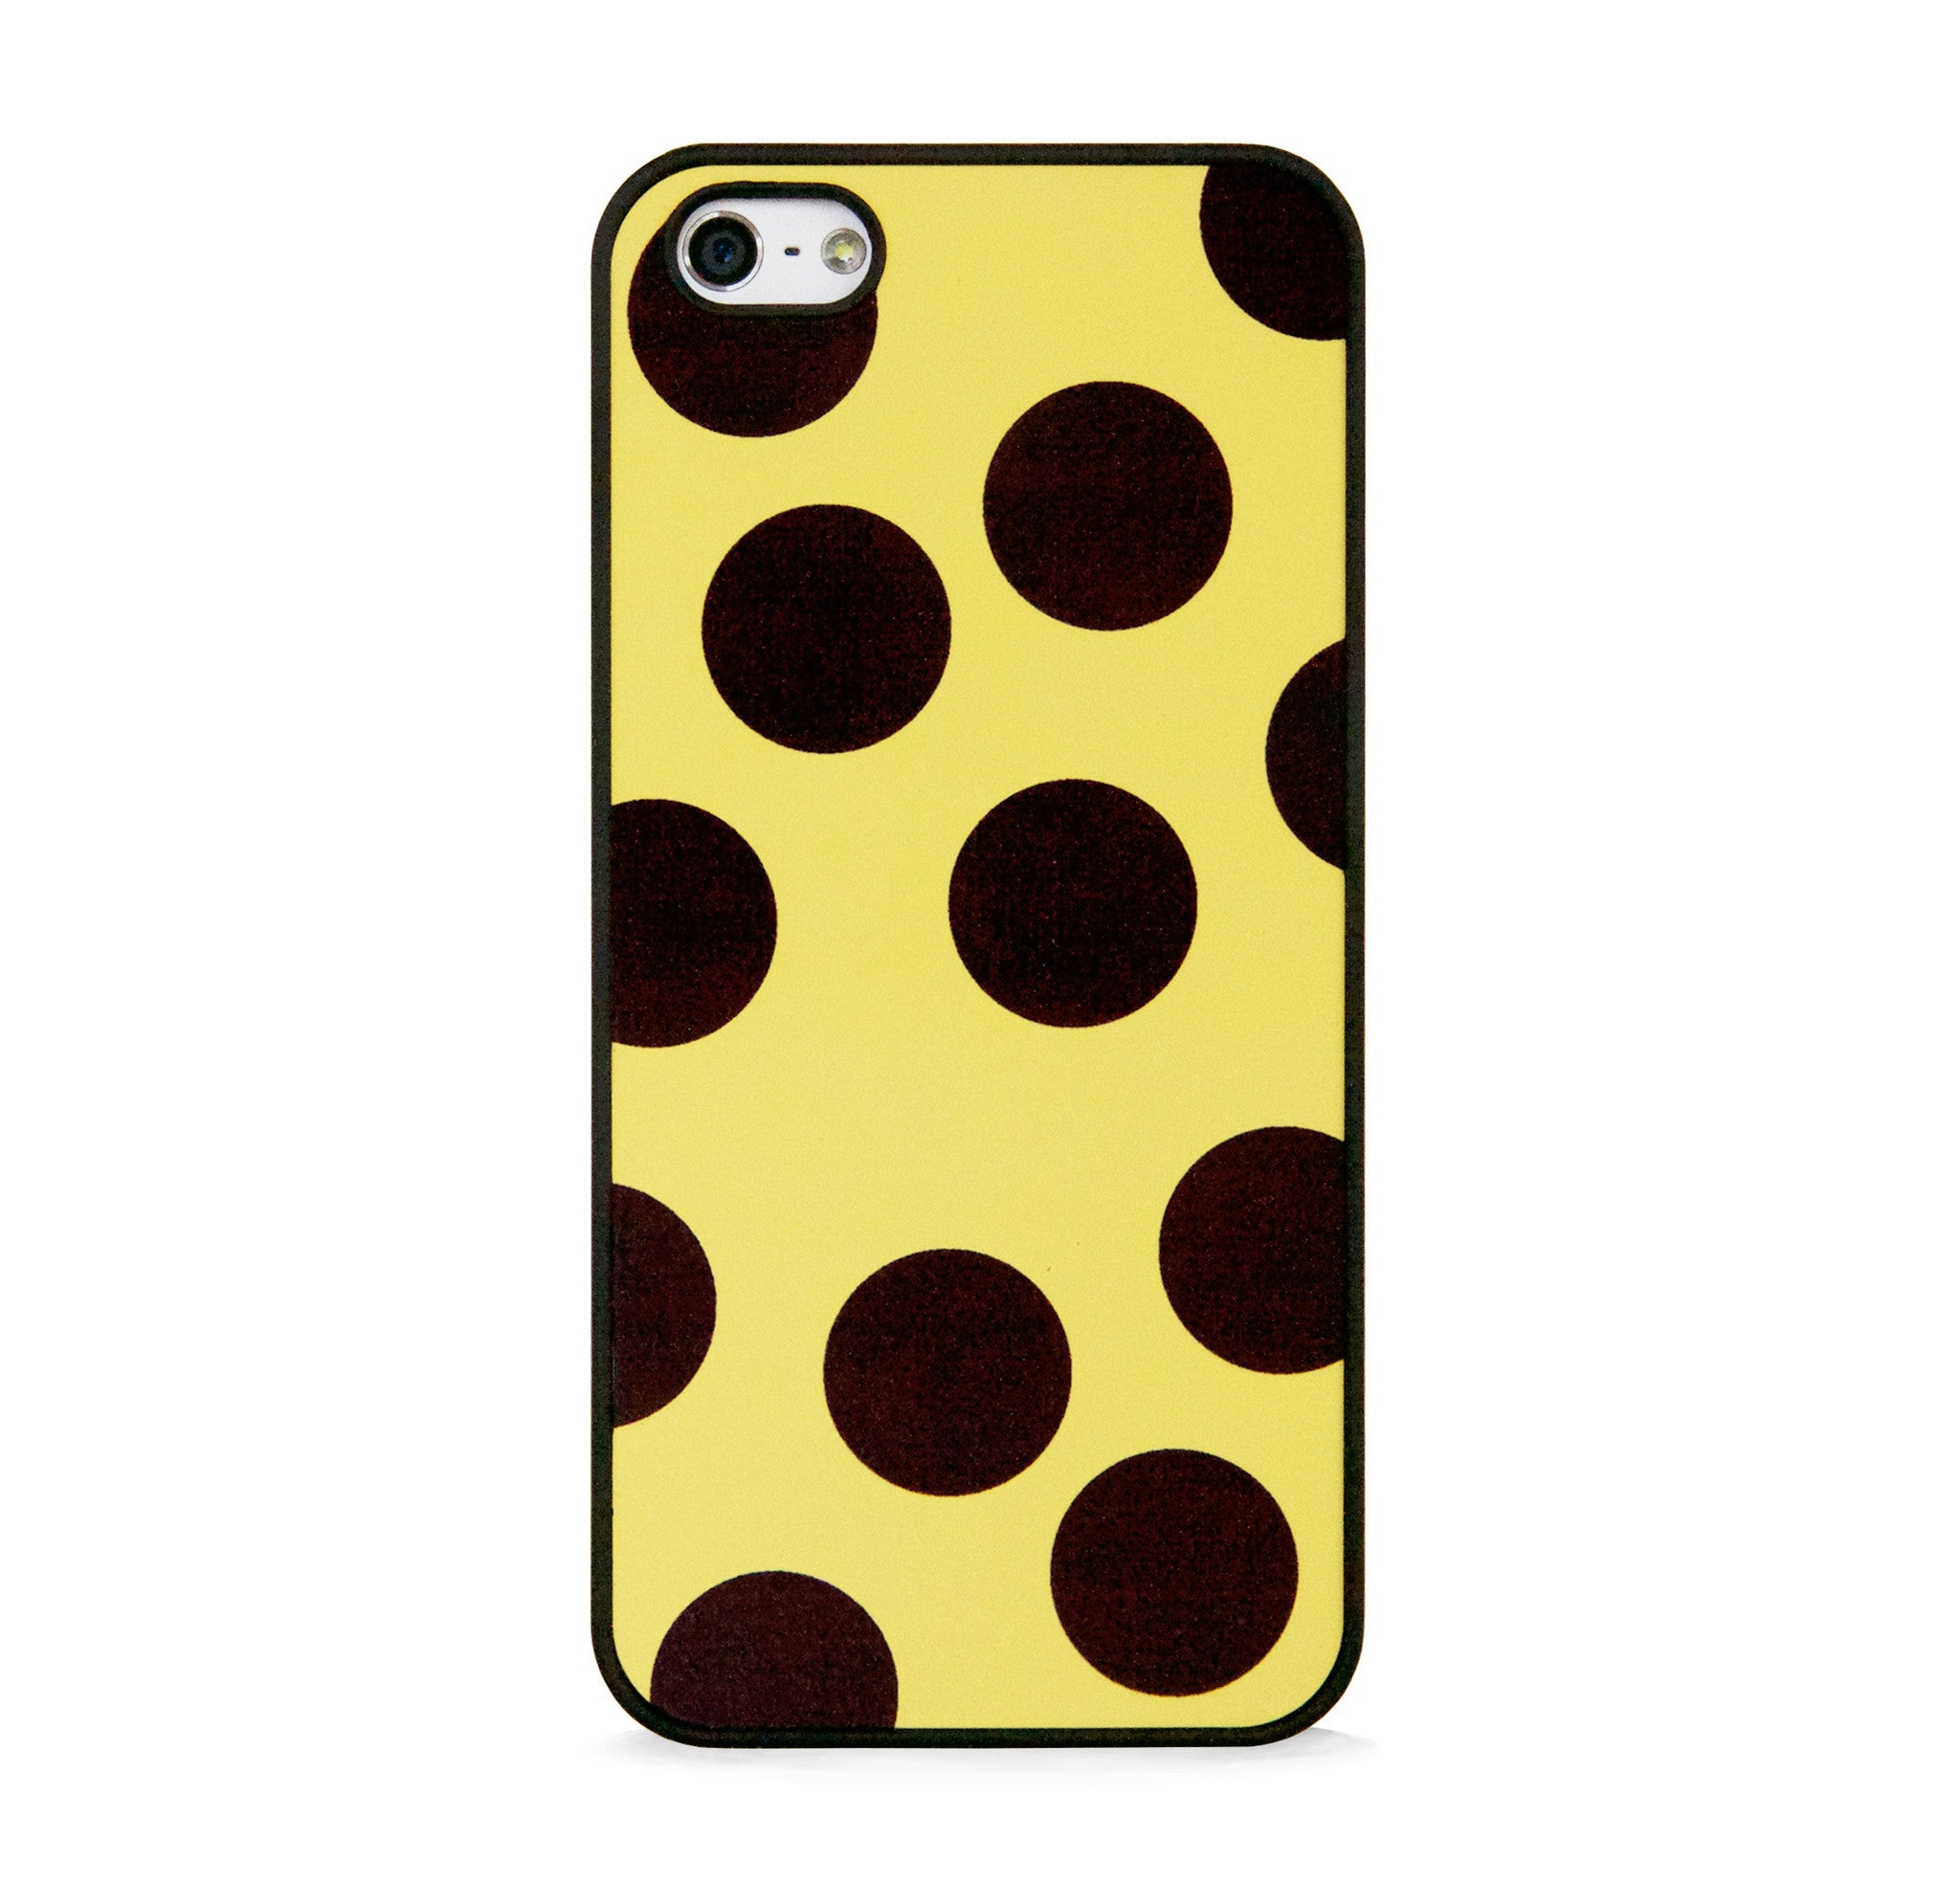 BIG POLKA DOTS ON YELLOW FOR IPHONE 5/5S, IPHONE SE